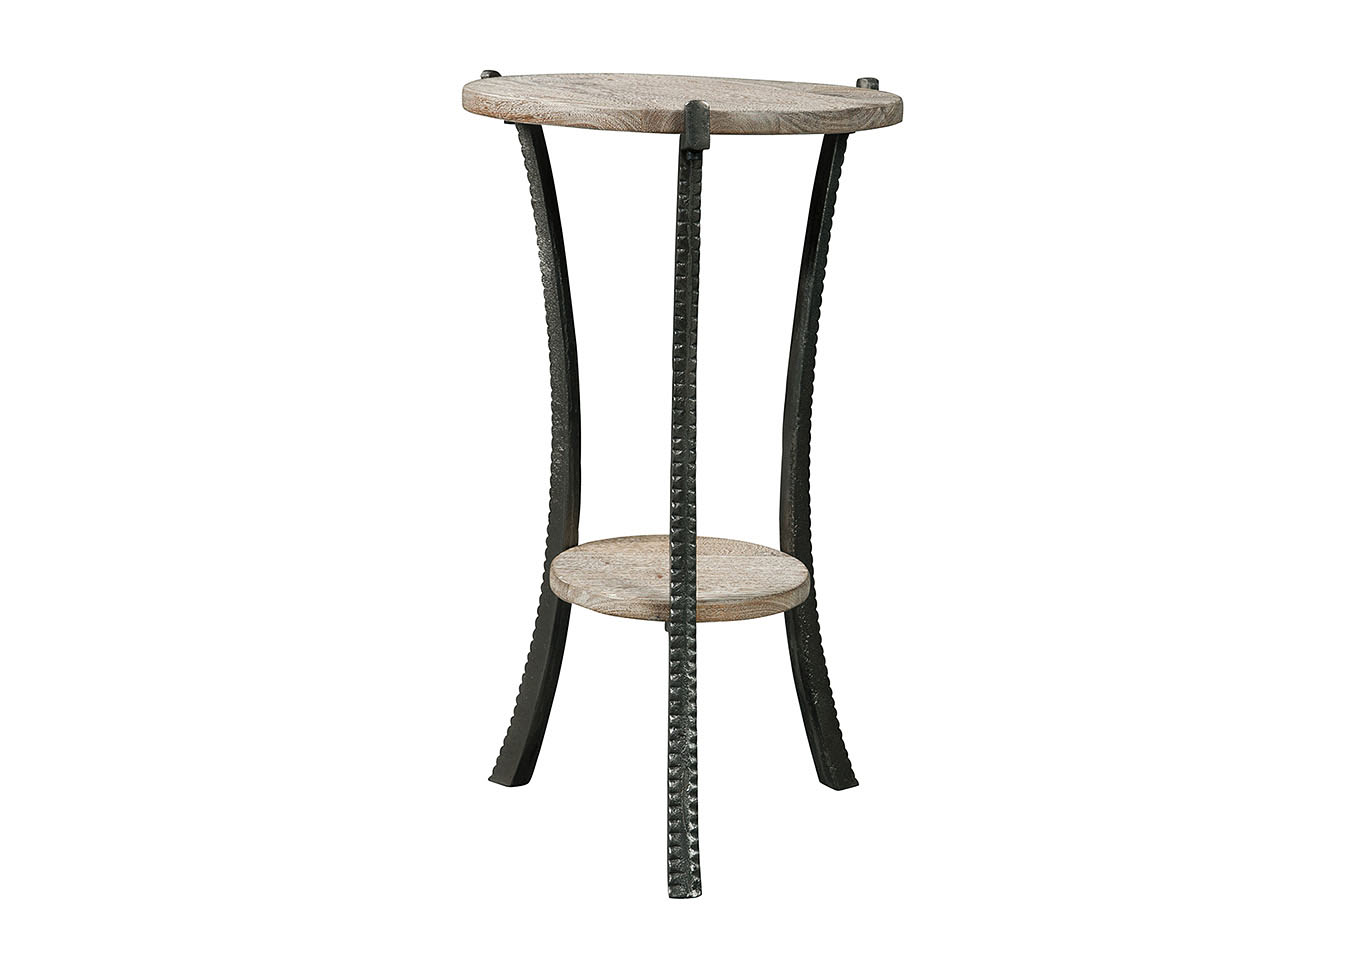 dream decor furniture springfield enderton white wash red outdoor accent table pewter signature design ashley fold away desk battery powered dining lamp free standing patio